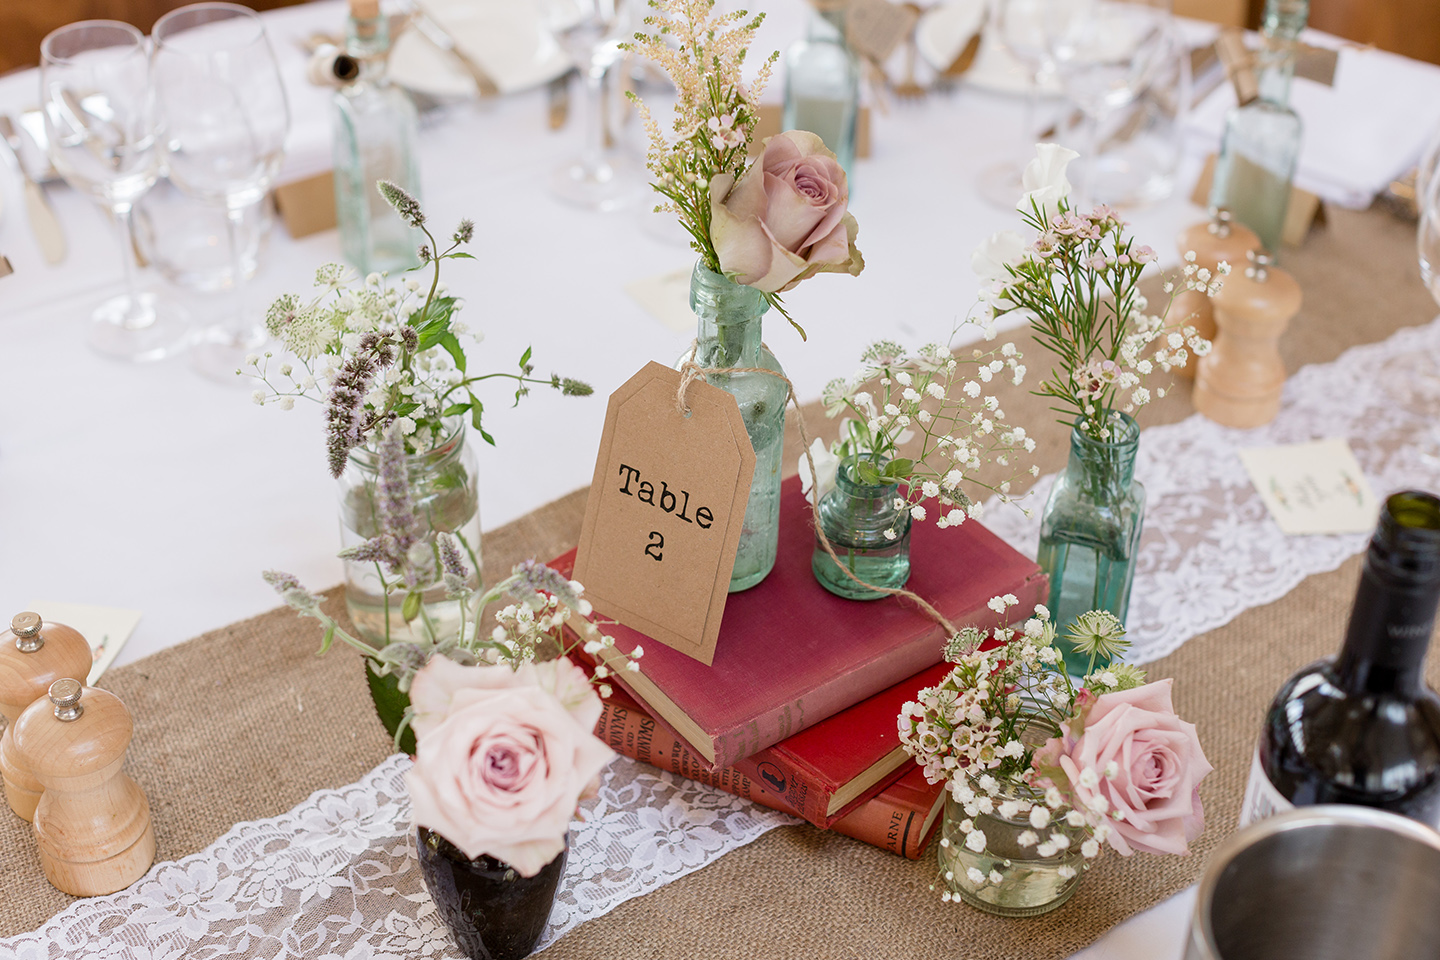 Books and jars of florals create rustic wedding table centrepieces for a summer wedding at Bassmead Manor Barns